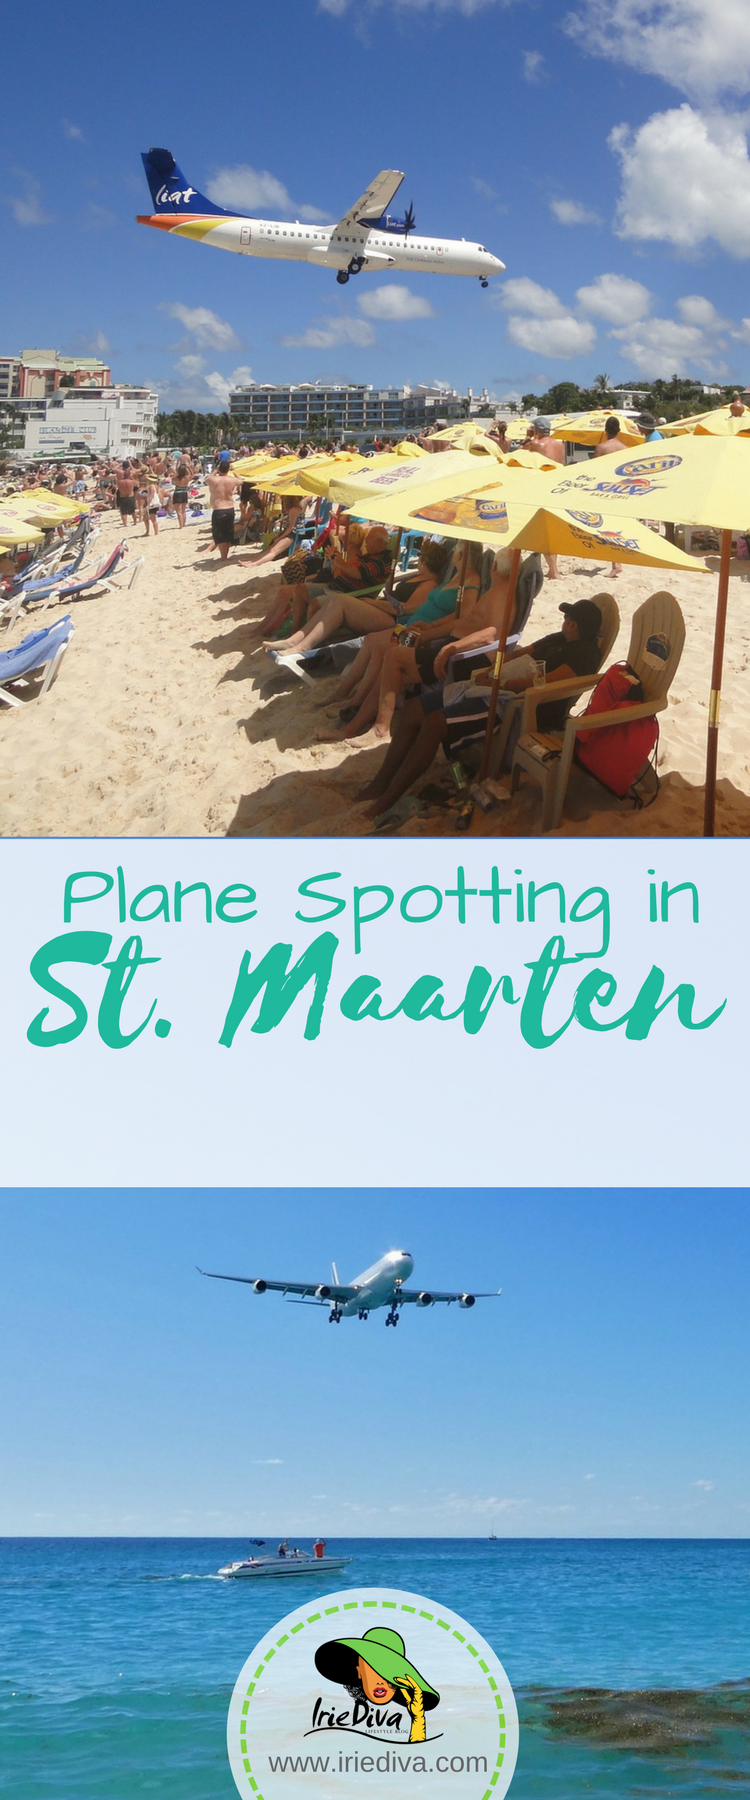 Plane spotting in St Maarten for an 8-hour layover there. The beach is right by the airport so the planes land insanely close to the sunbathers right below!